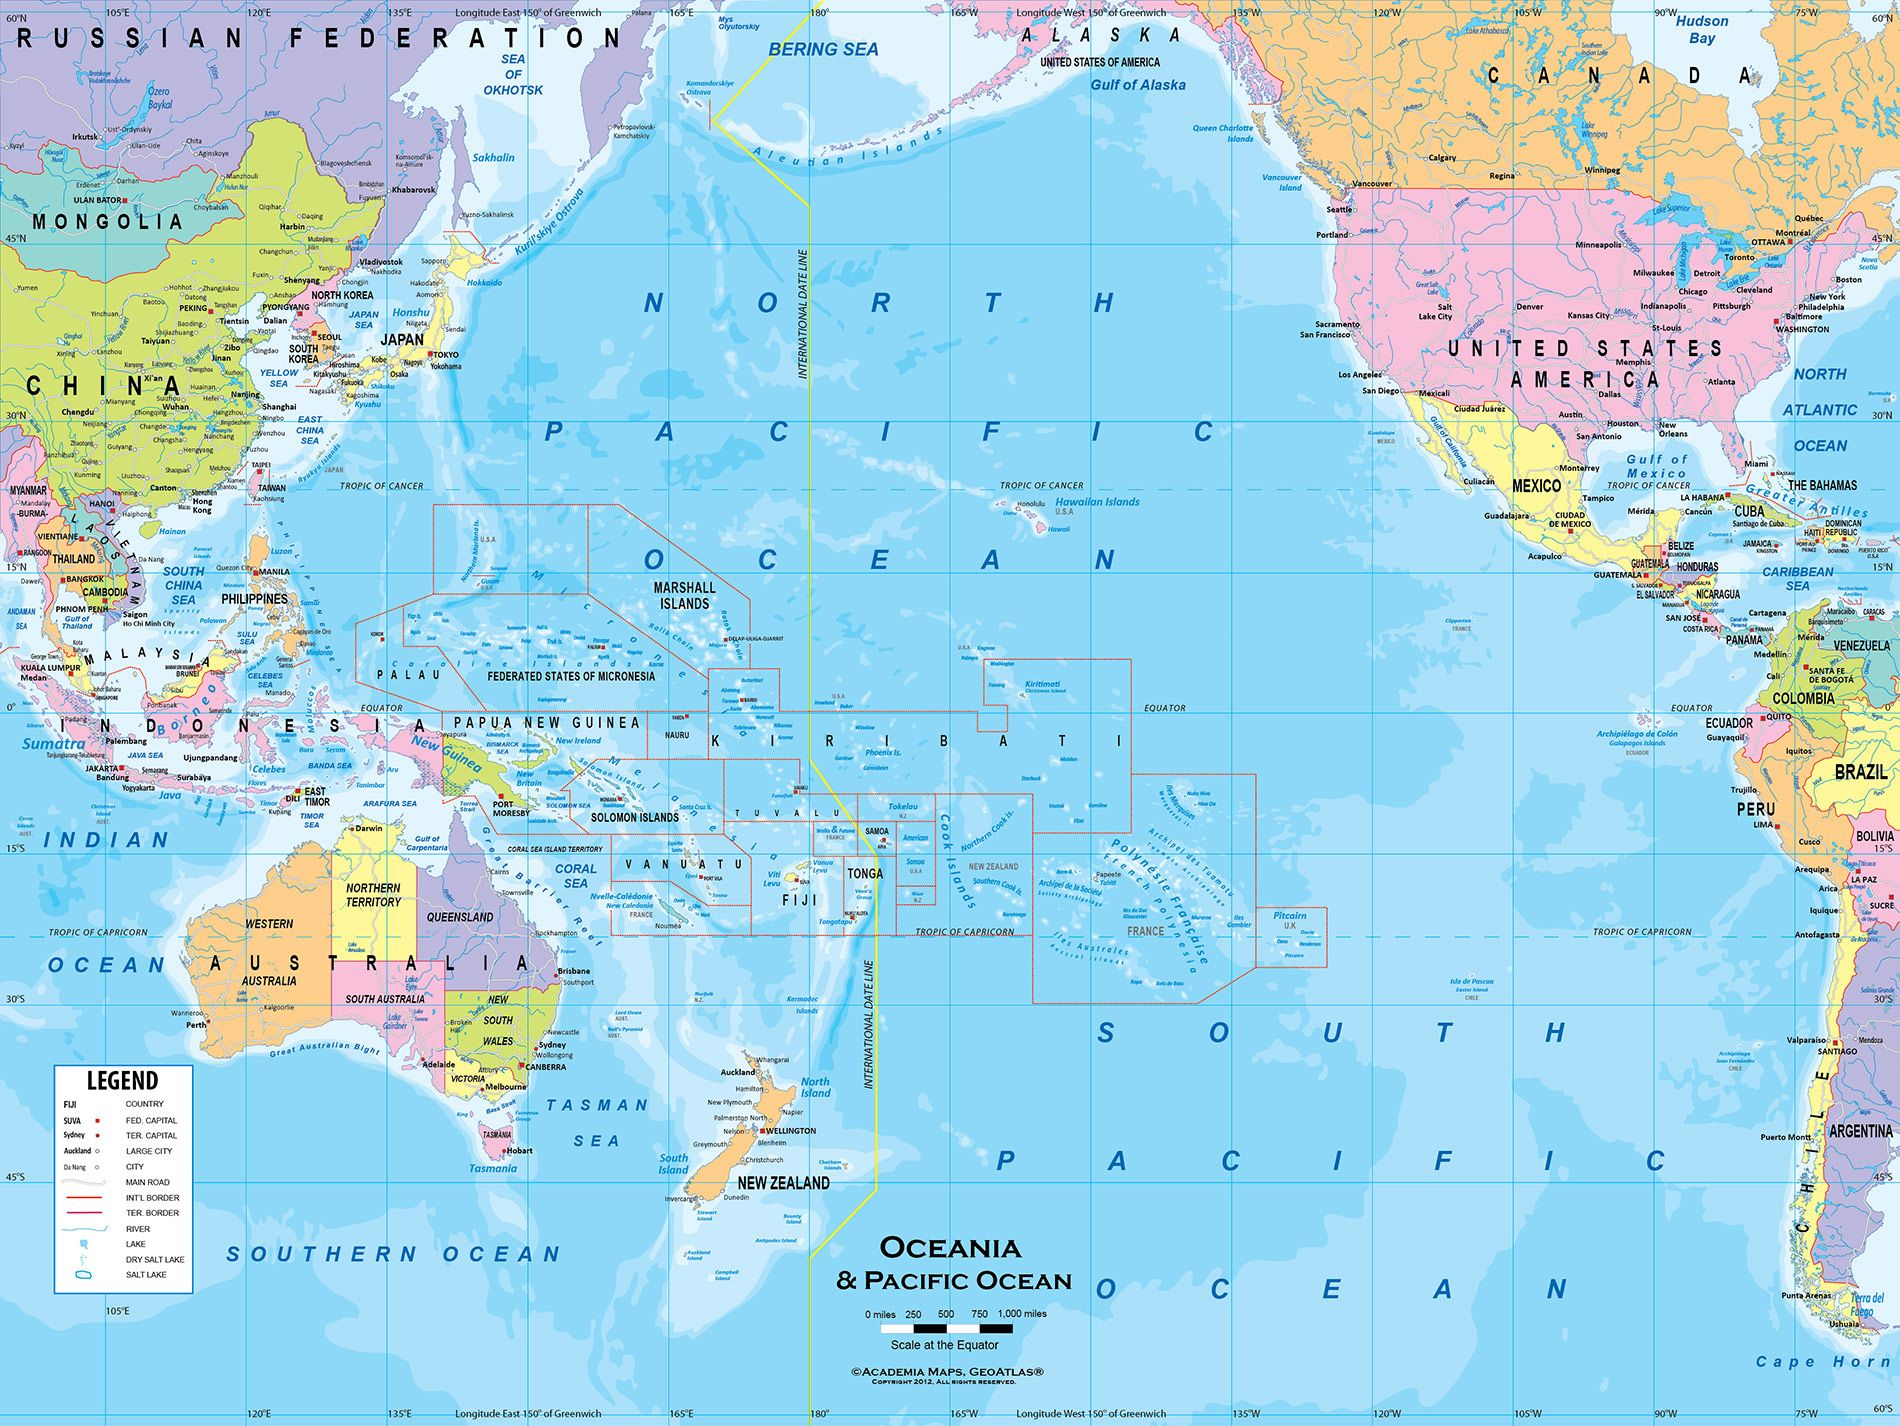 Pin by julia hemmings on summer assignment references pinterest wall maps australia island nations latitude longitude social studies countries highlights classroom roads gumiabroncs Choice Image